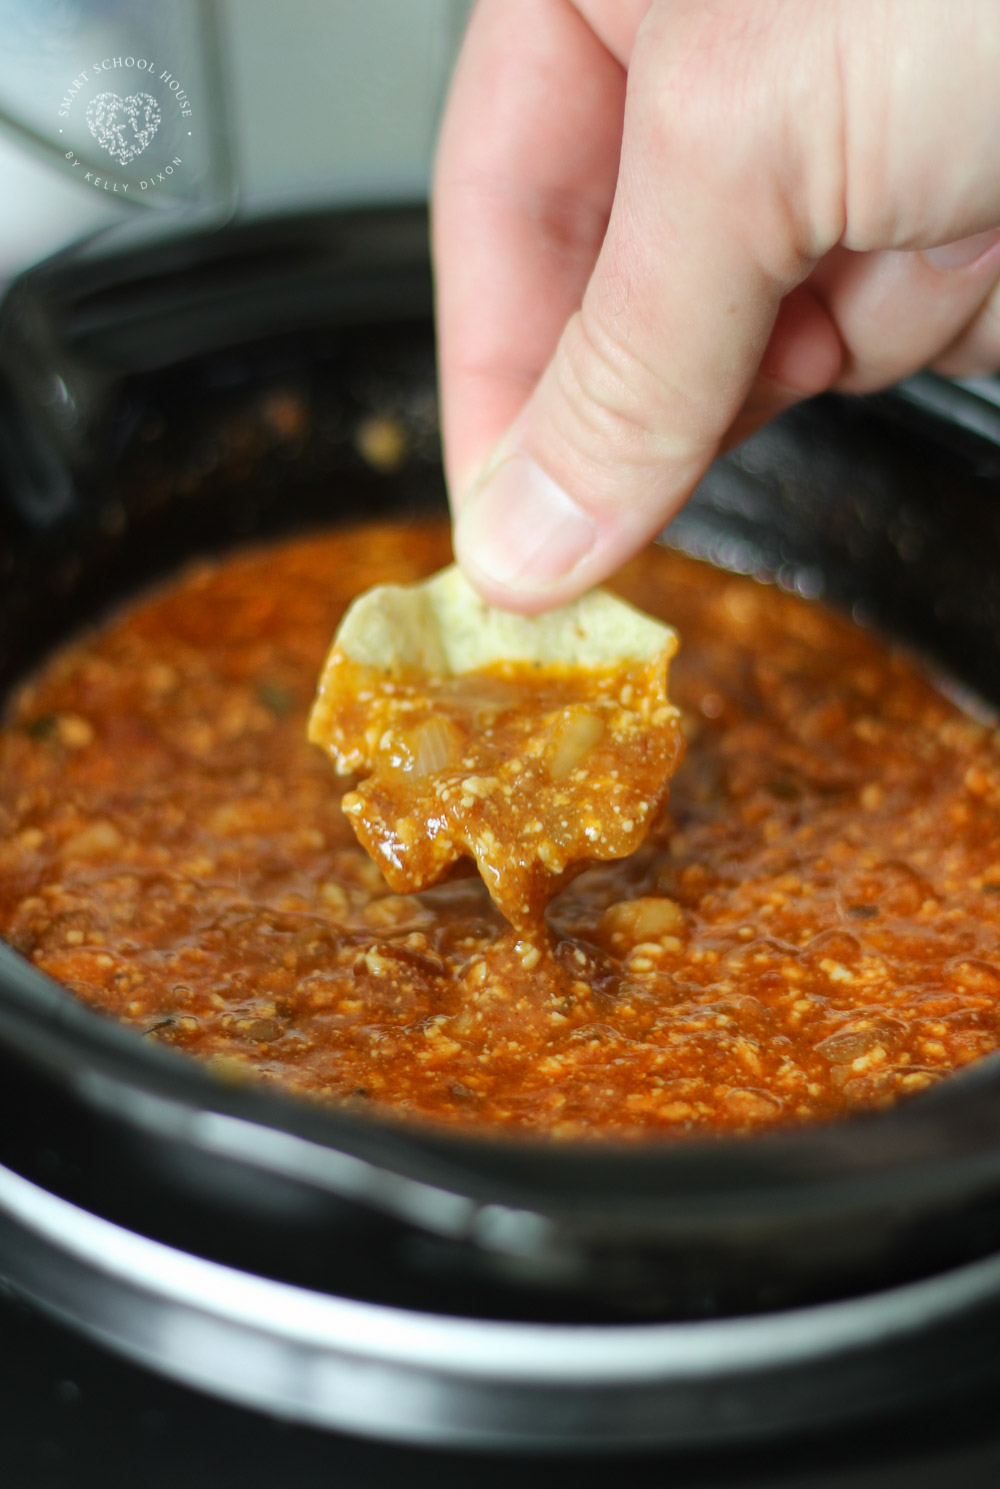 This quick and easy homemade Crock Pot Chili Dip is loaded with queso fresco goodness, chili, and salsa.